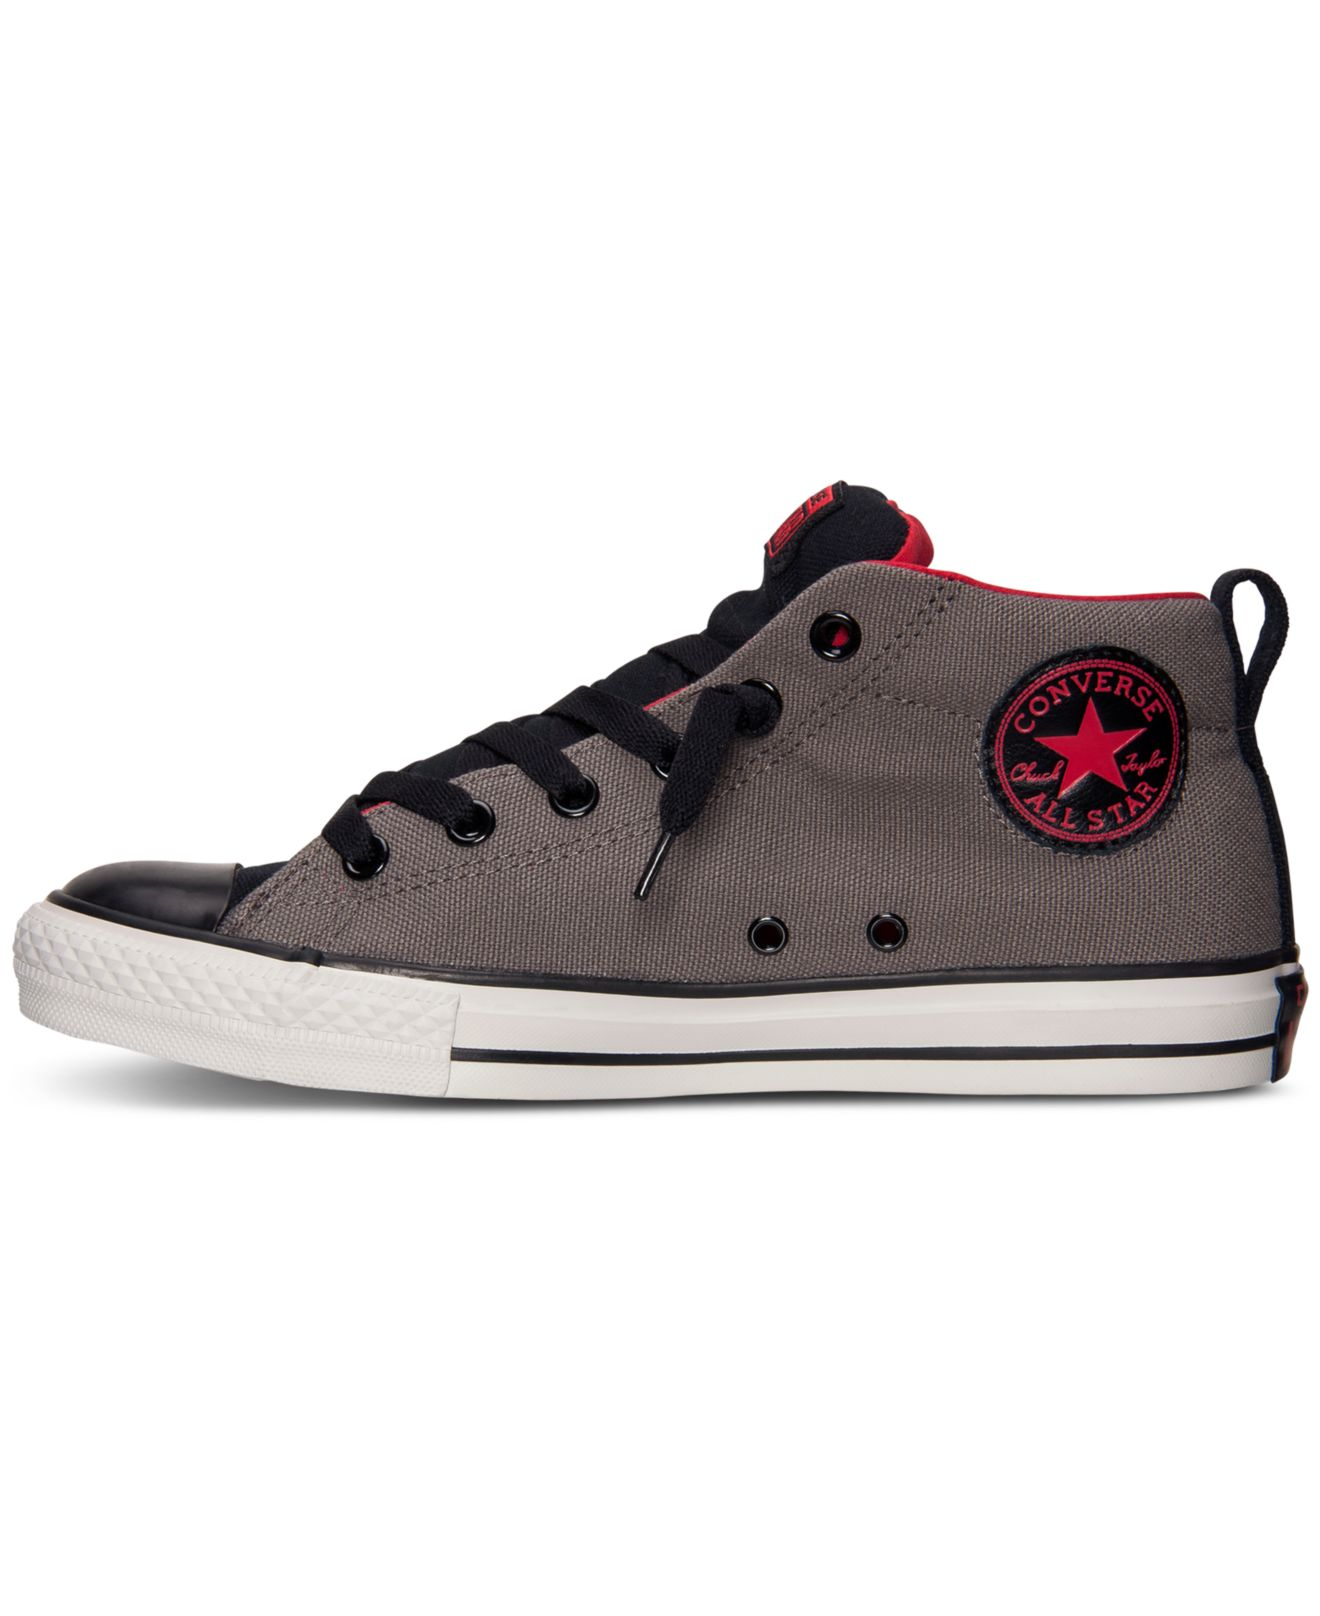 a5077cf1bd98 Lyst - Converse Men S Chuck Taylor Street Mid Casual Sneakers From ...